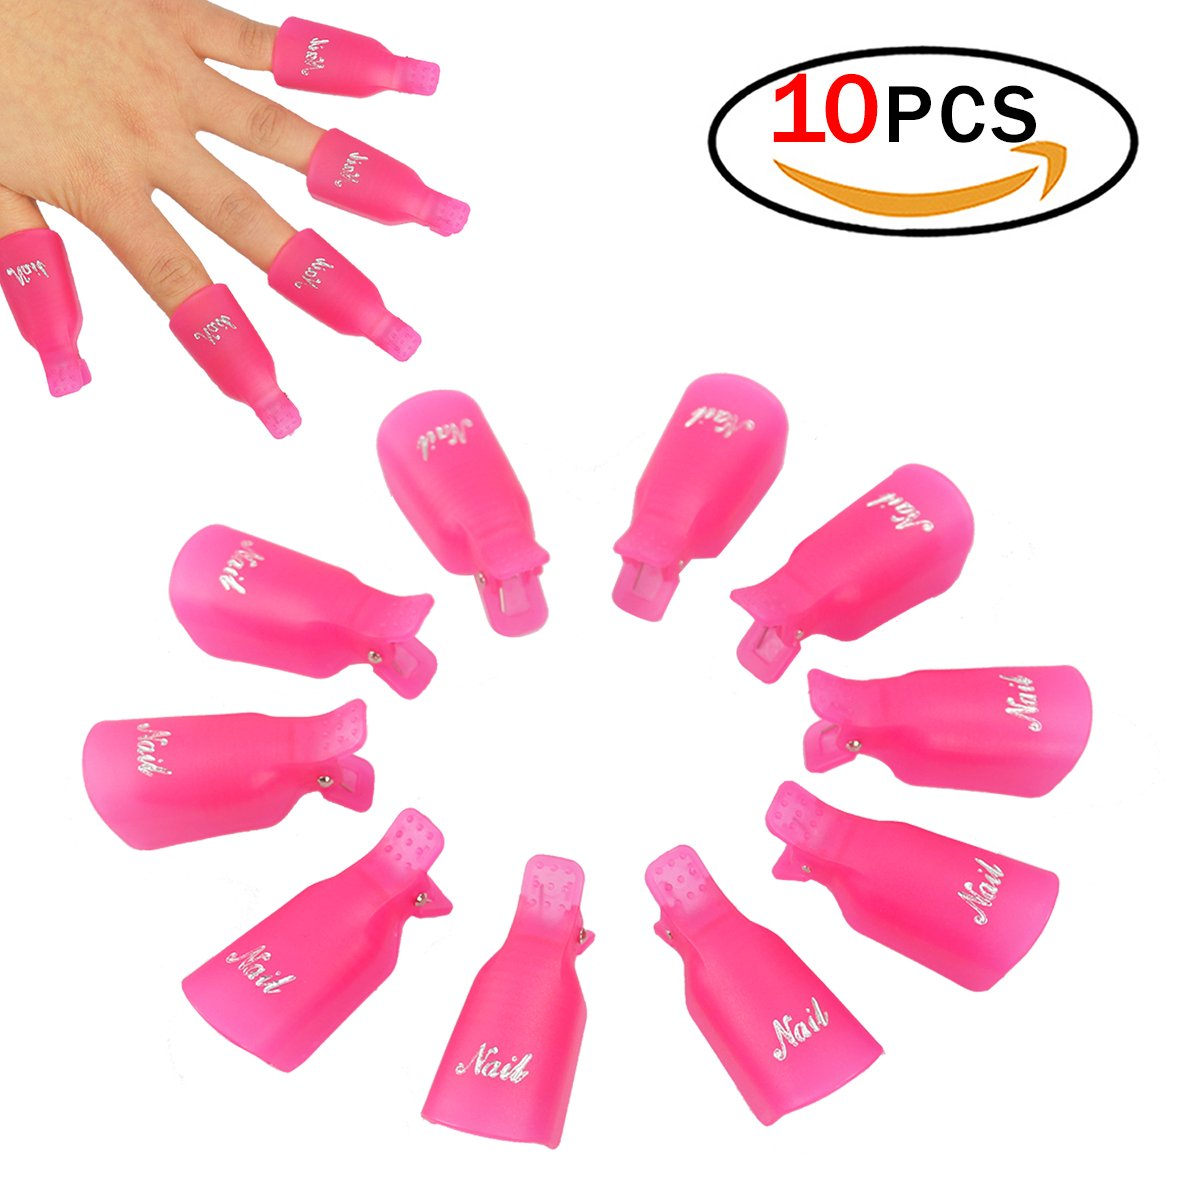 10 Pcs Plastic Acrylic Nail Art Soak Off UV Gel Polish Remover Wrap Clip Cap Nail Tool (Rose-Rouge) Homki